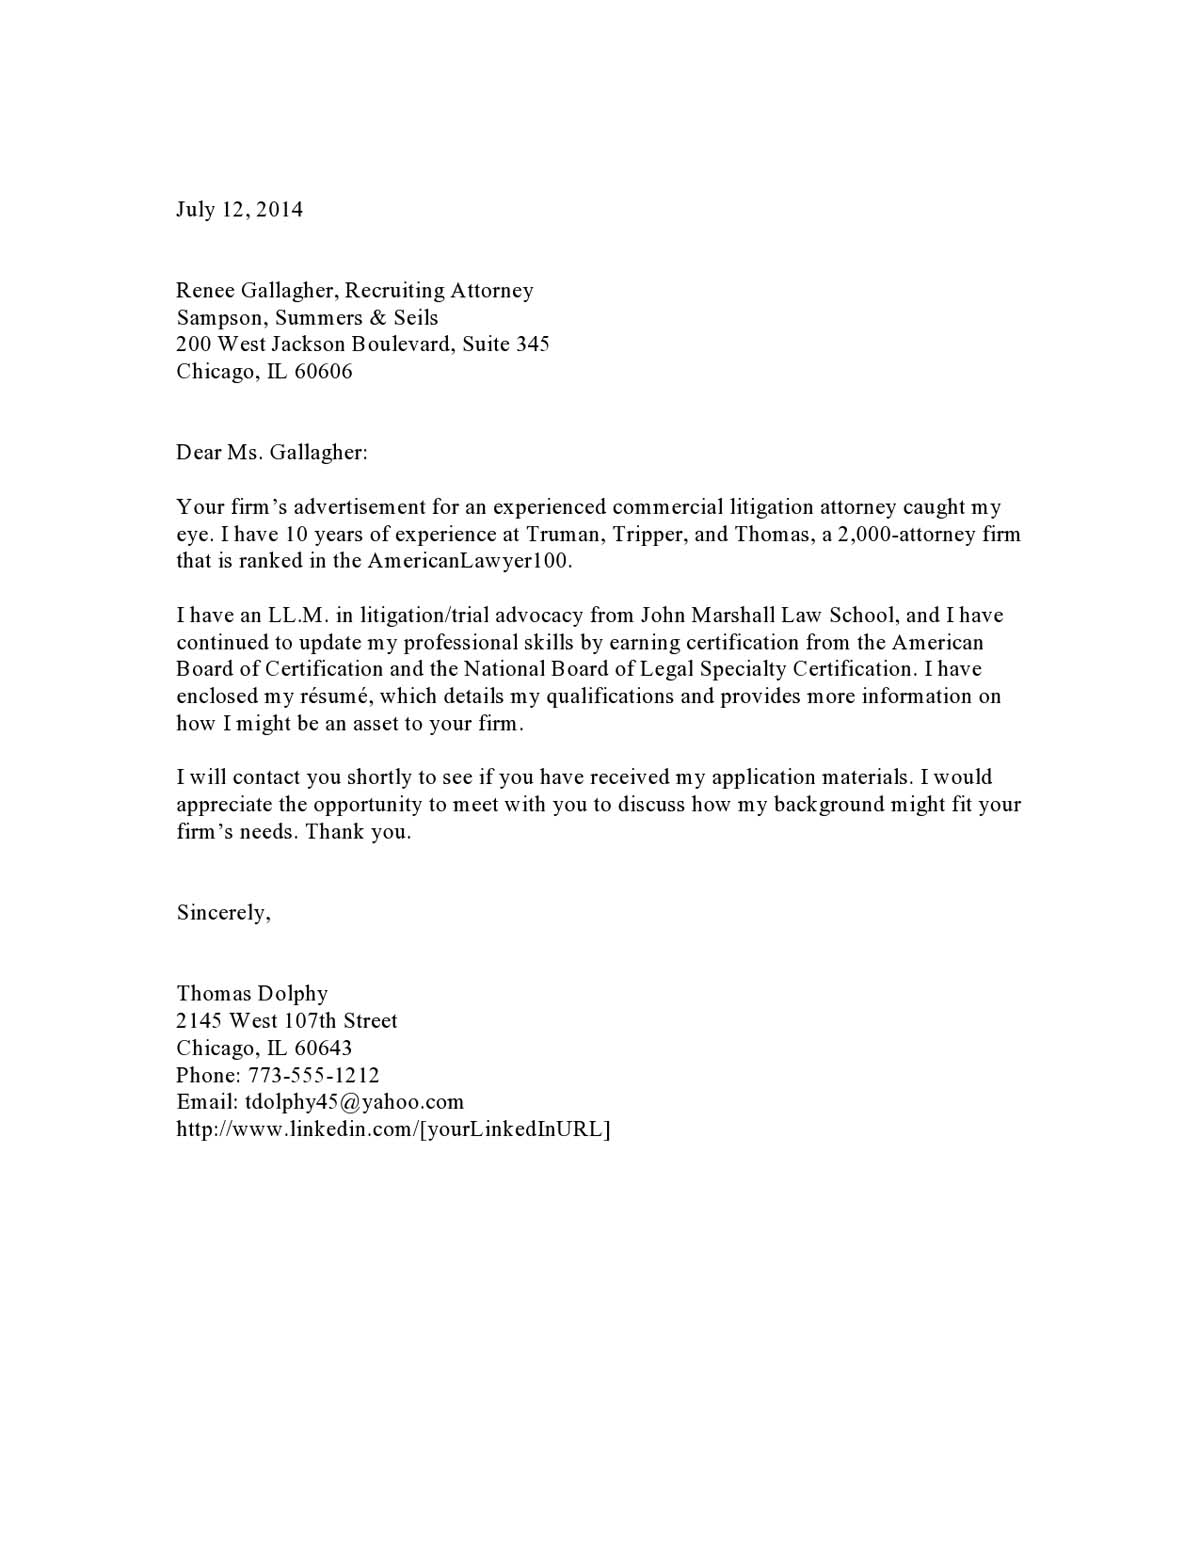 Cover Letter For Law Firm from media2.vault.com